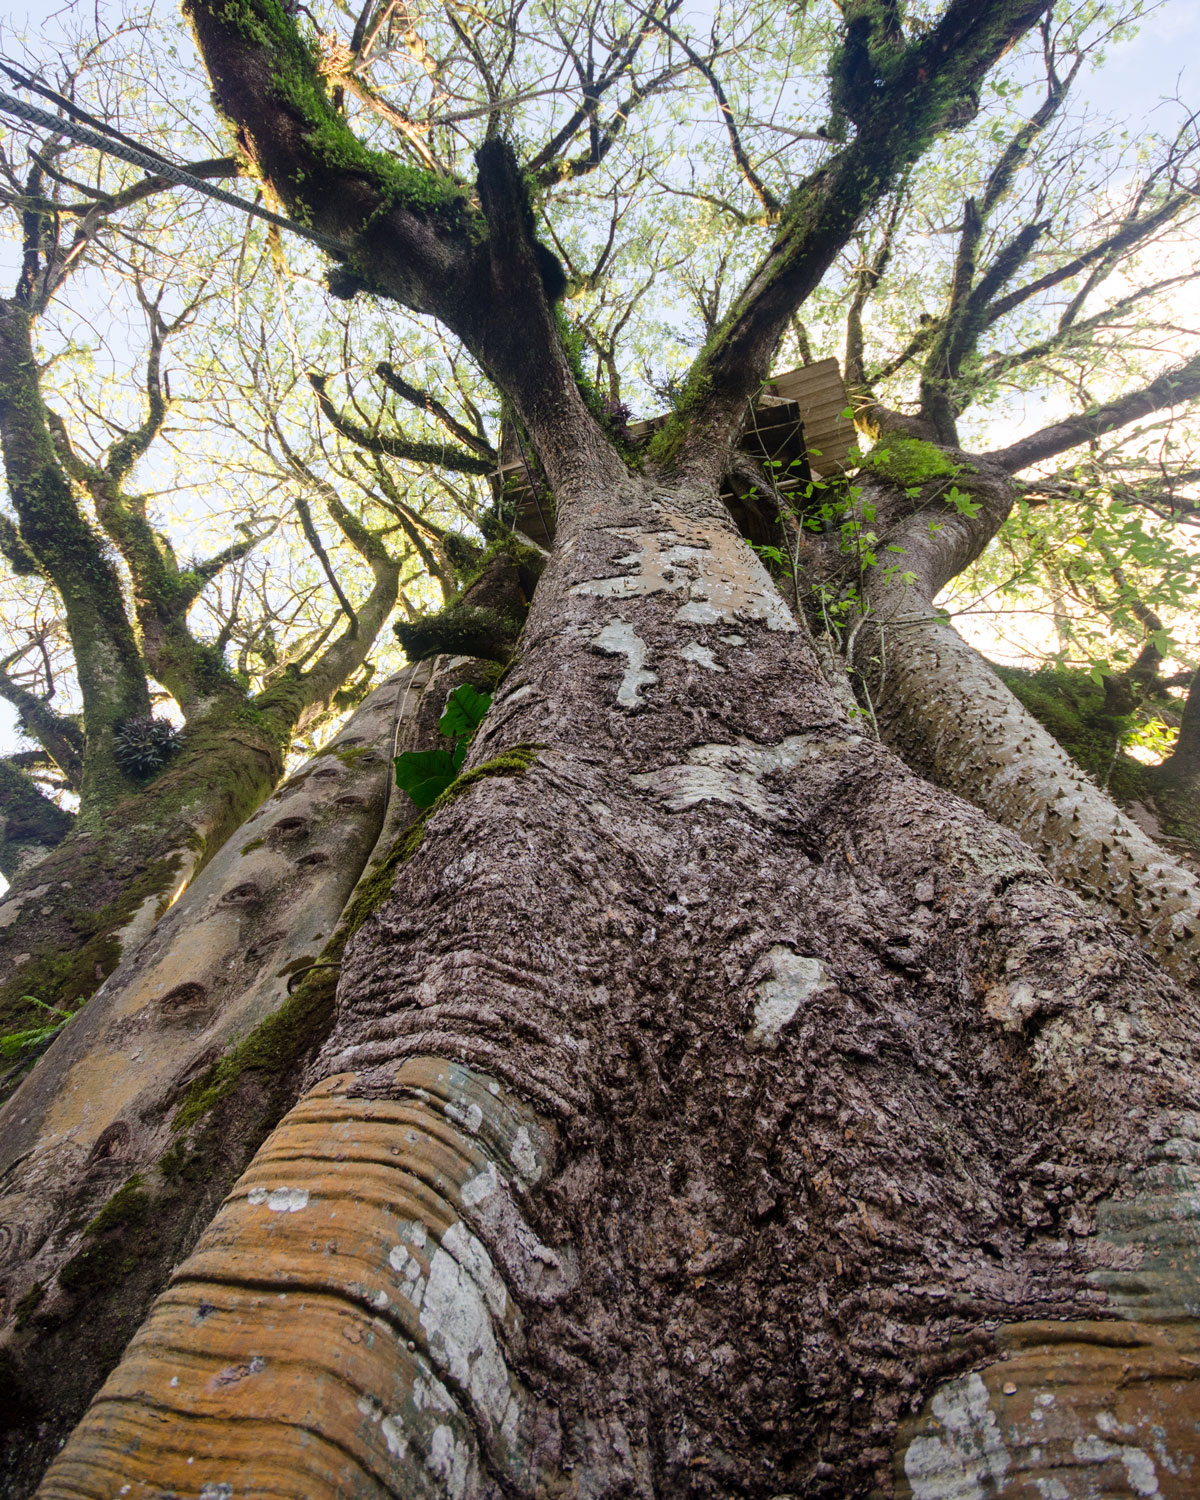 From the ground looking up at the oldest ceibo tree, San Cristobal, The Galapagos | ©Angela Drake